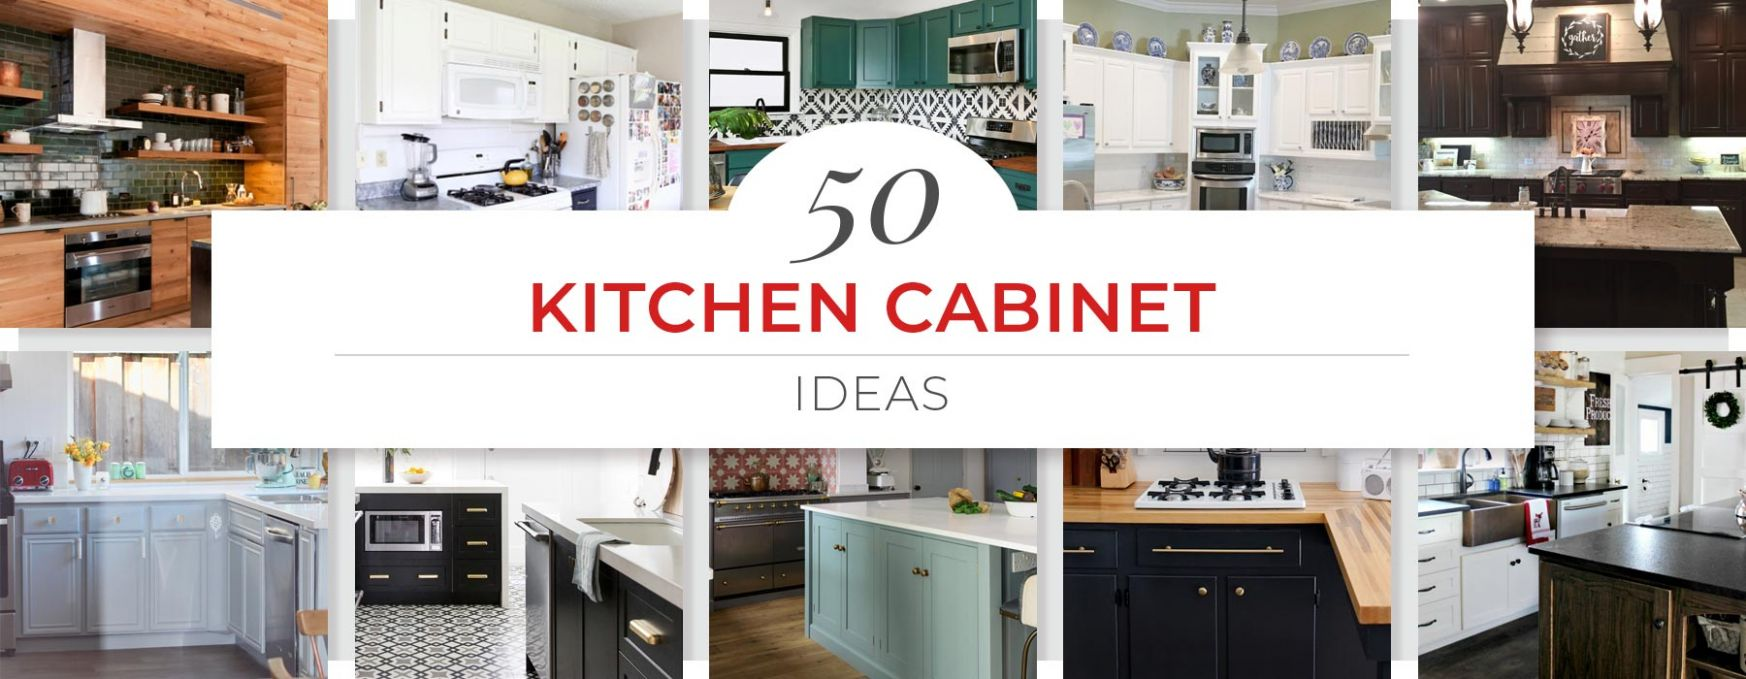 12 Kitchen Cabinet Ideas for 12